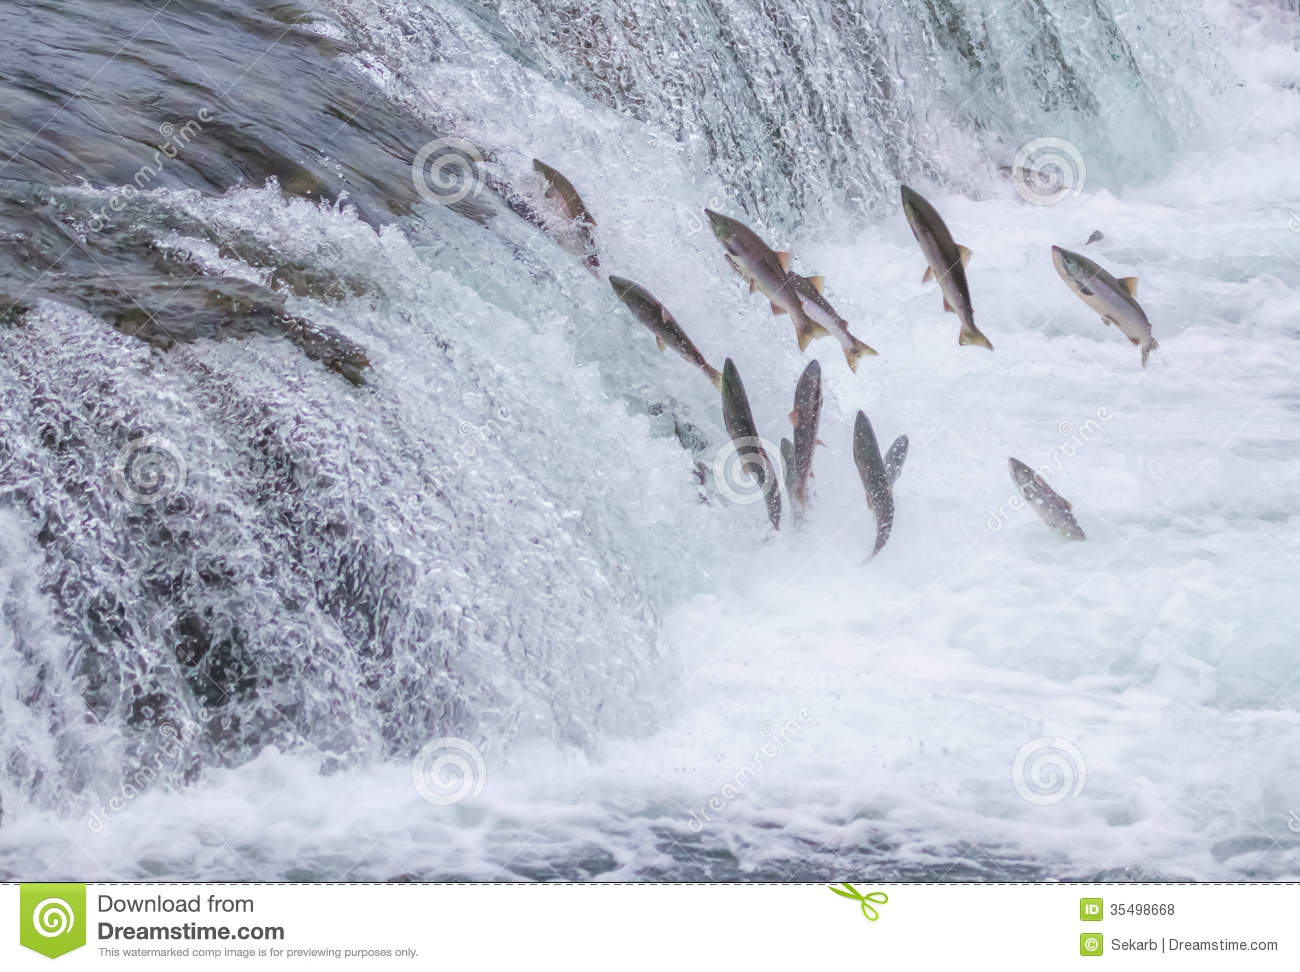 Image result for atlantic salmon leaping water fall